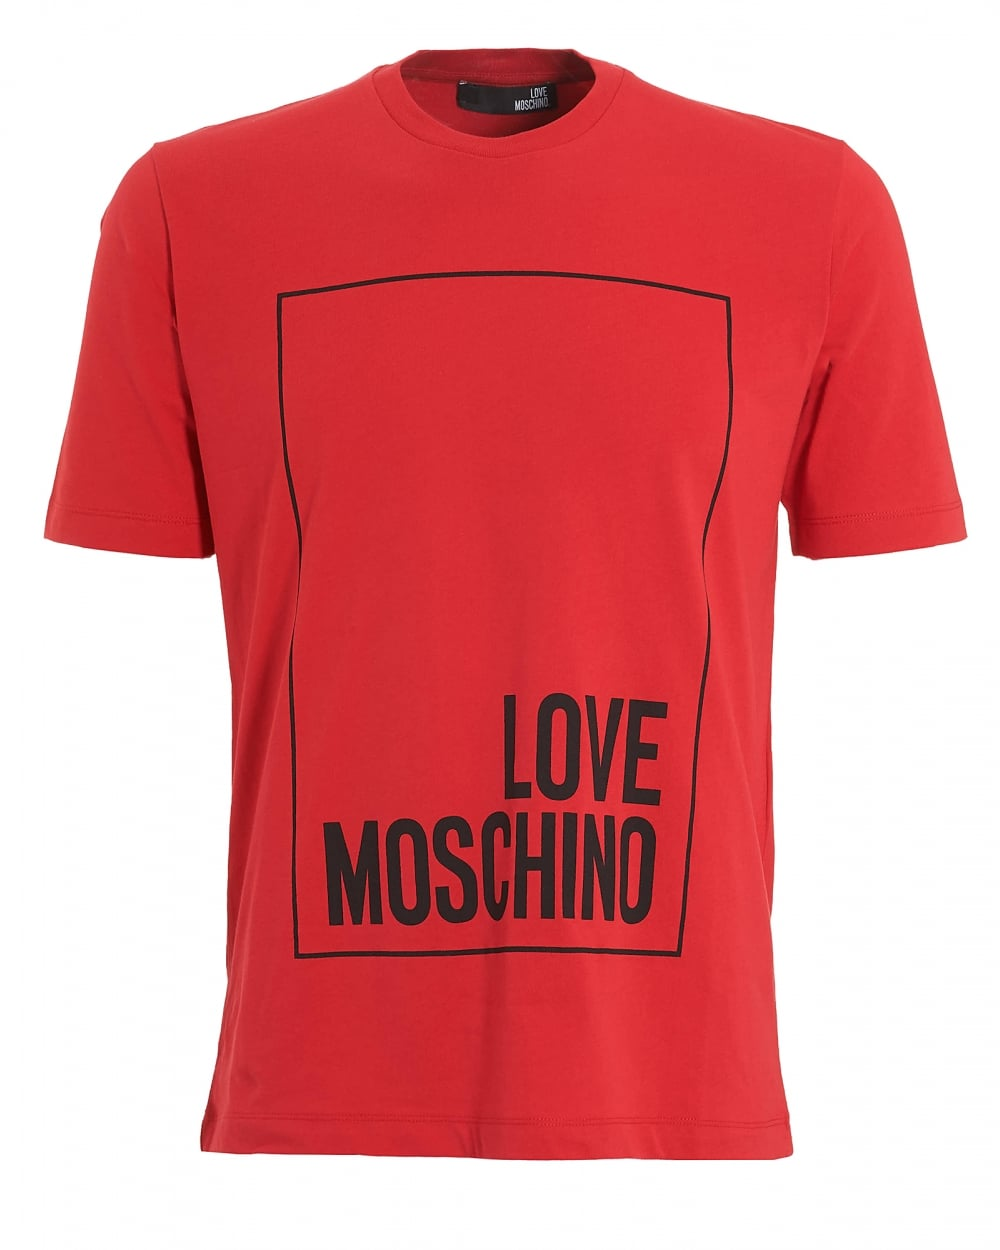 Love moschino mens box logo t shirt regular fit red tee for The red t shirt company